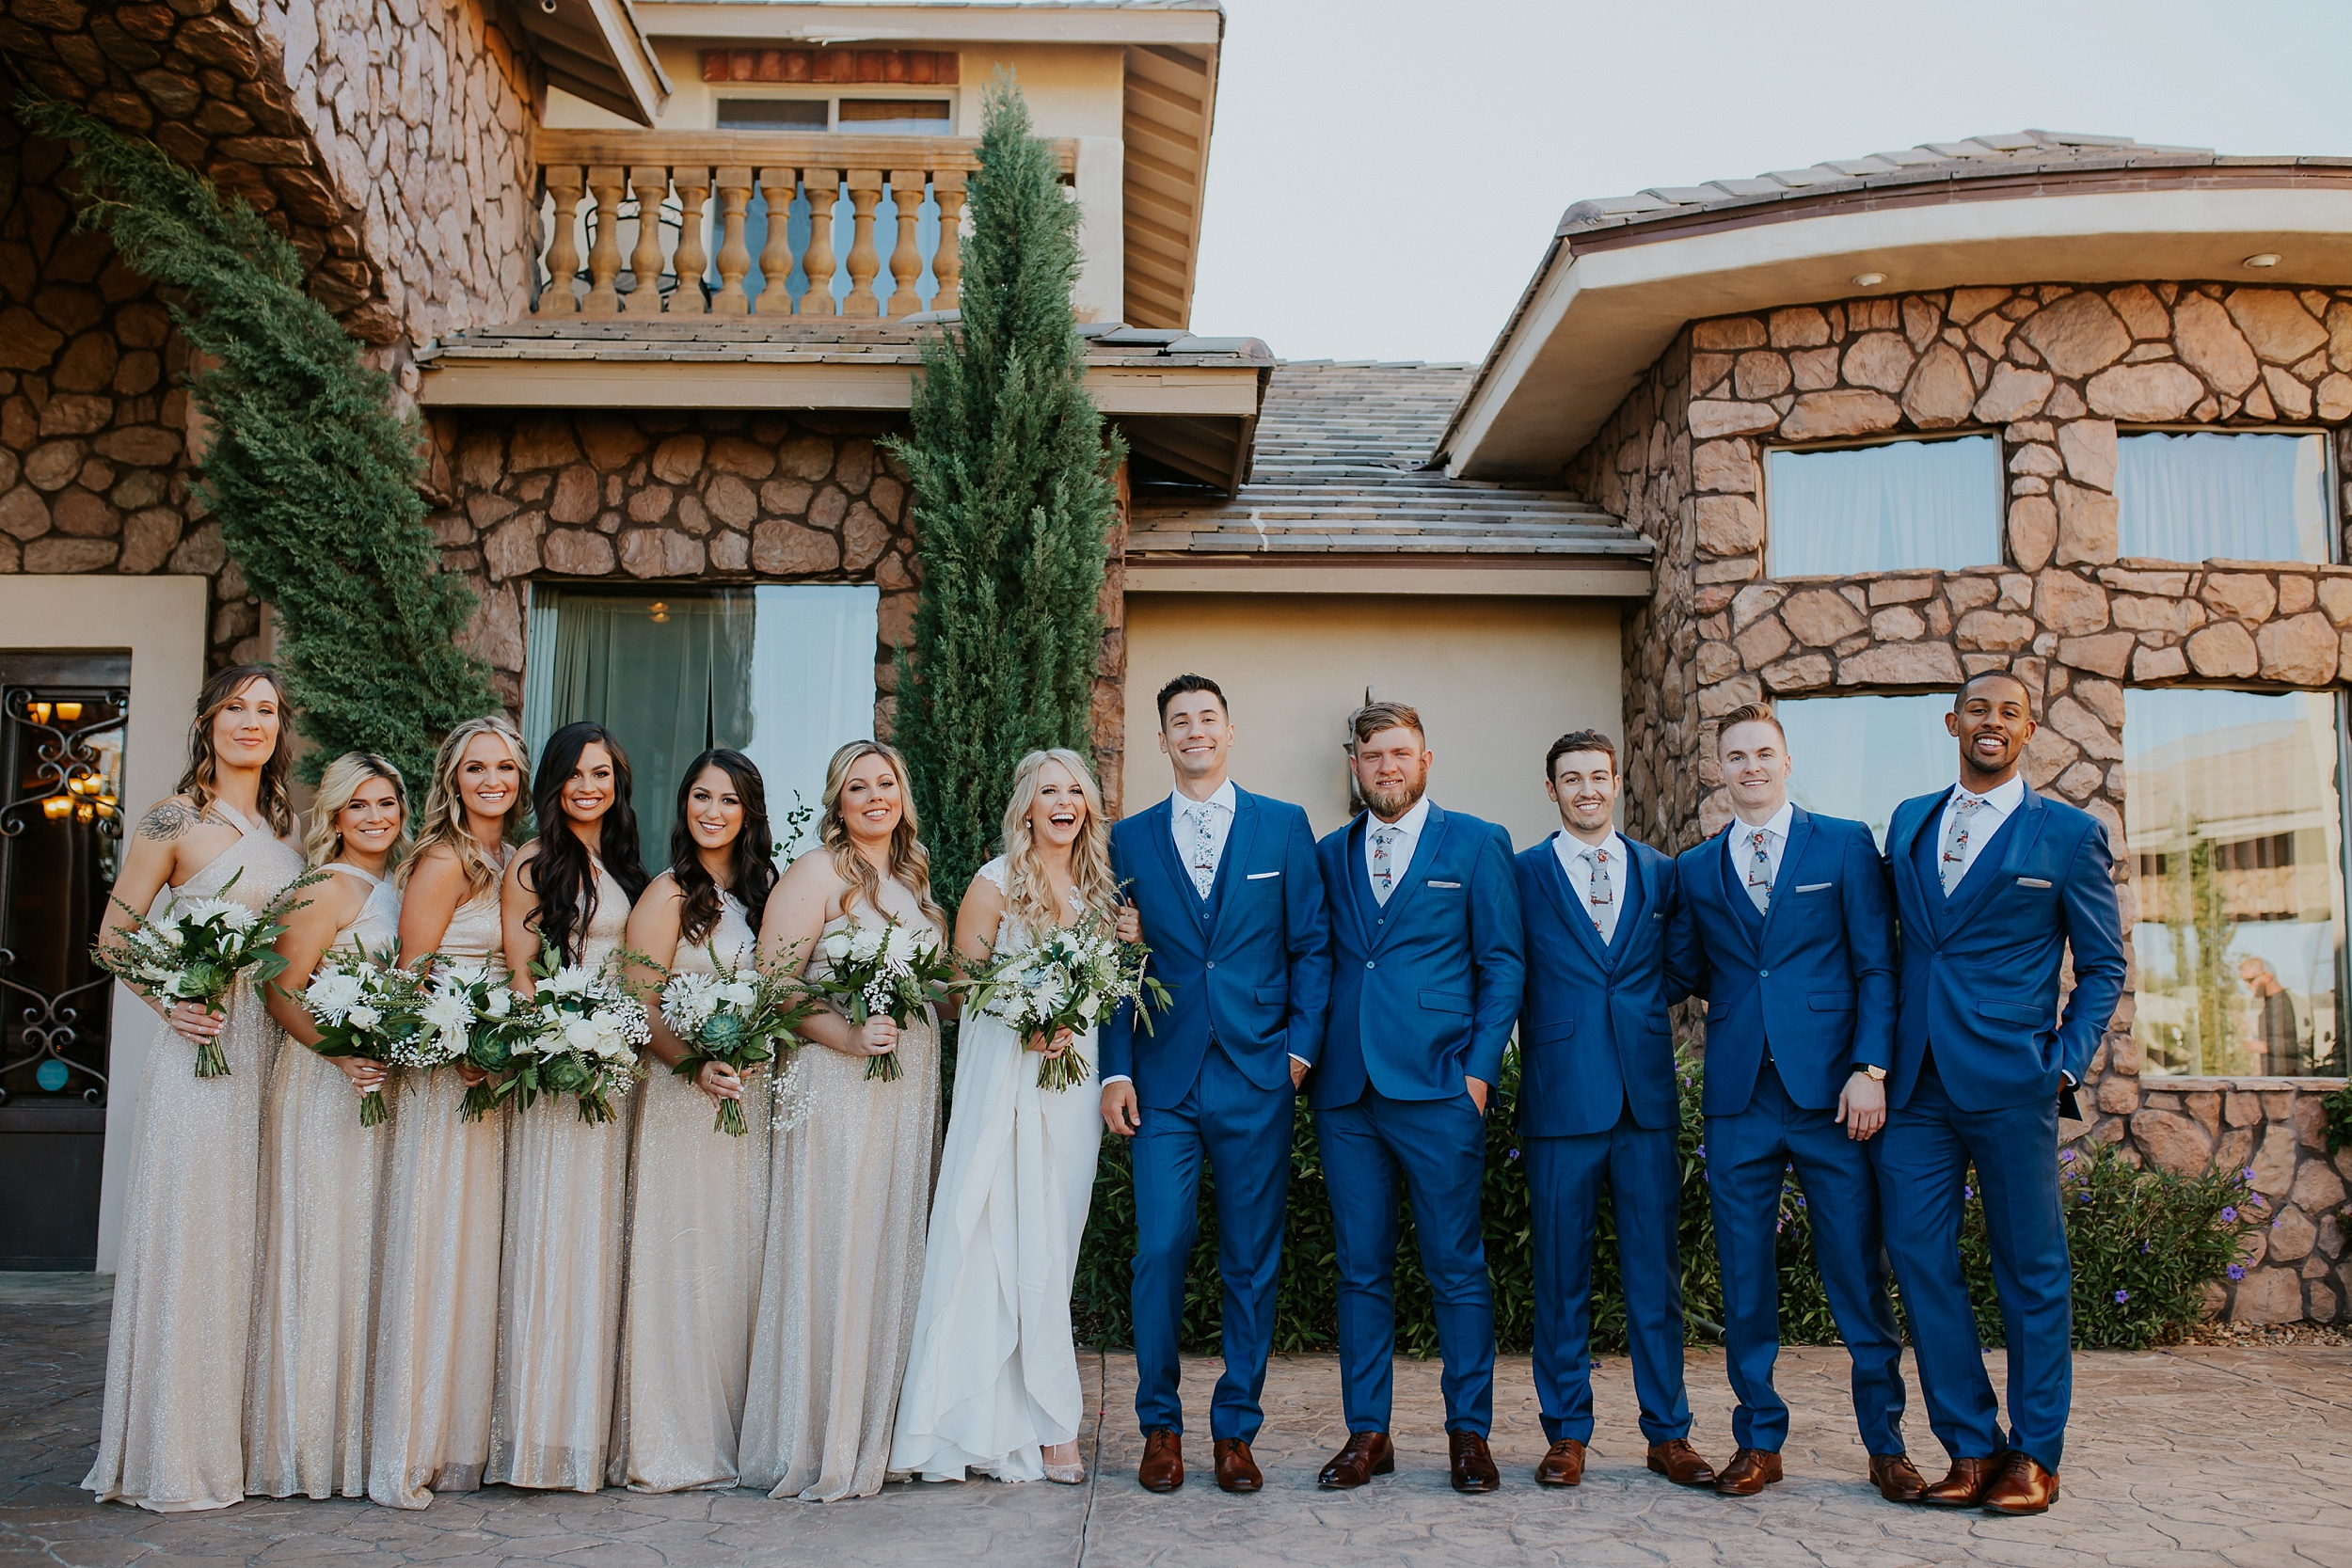 Meg+Bubba_Wedding_WeddingParty_Arizona-102.jpg